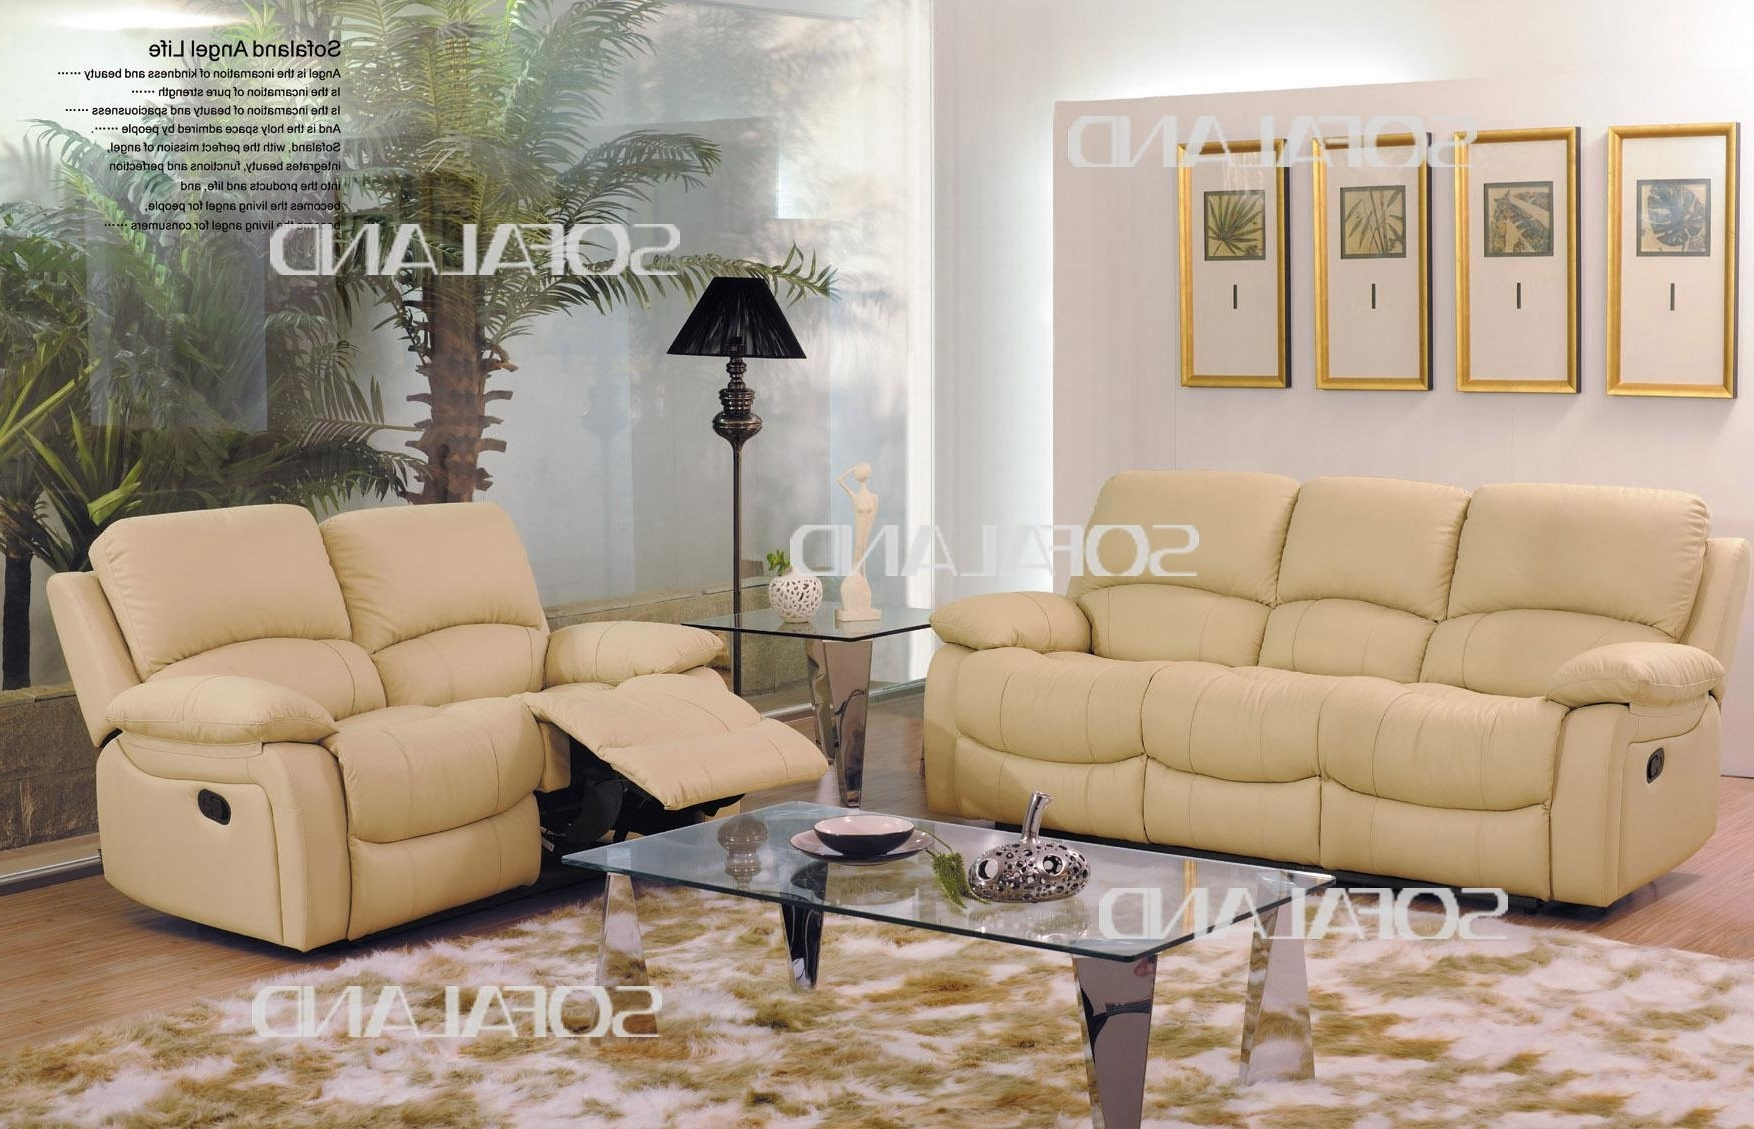 Famous Colored Leather Sofas Sofa Caramel Furniture Light Brown Yellow Within Cream Colored Sofas (View 13 of 20)